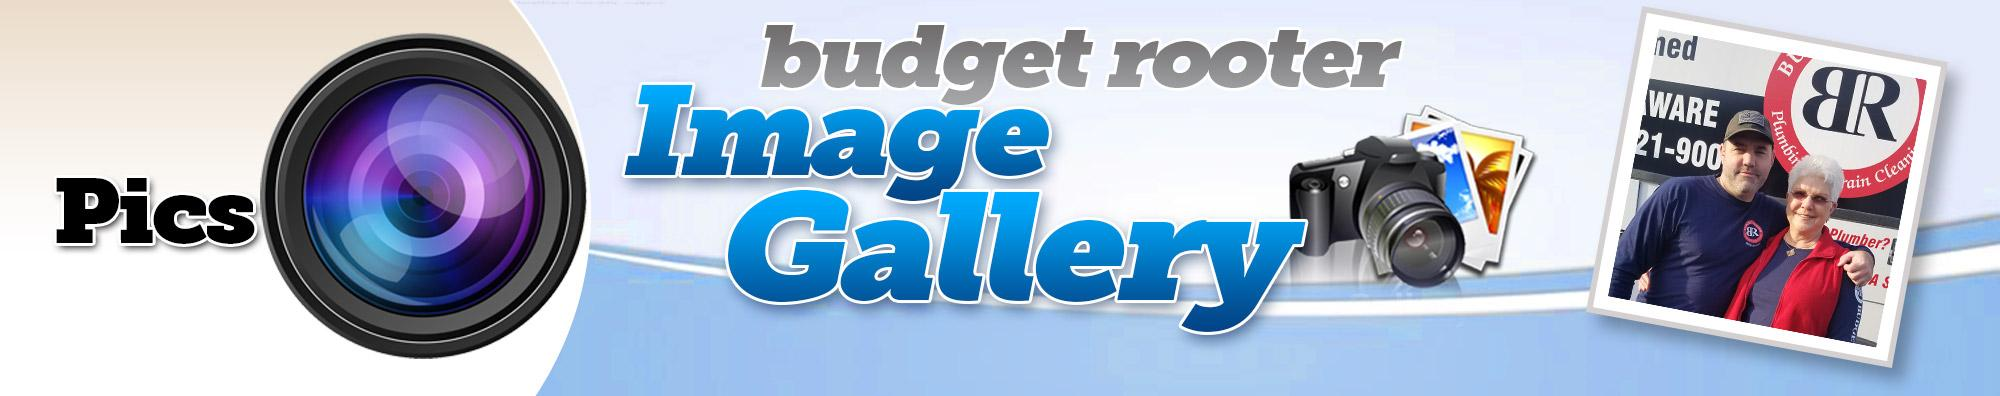 Image Gallery at Budget Rooter in Budget Rooter in New Castle County, DE